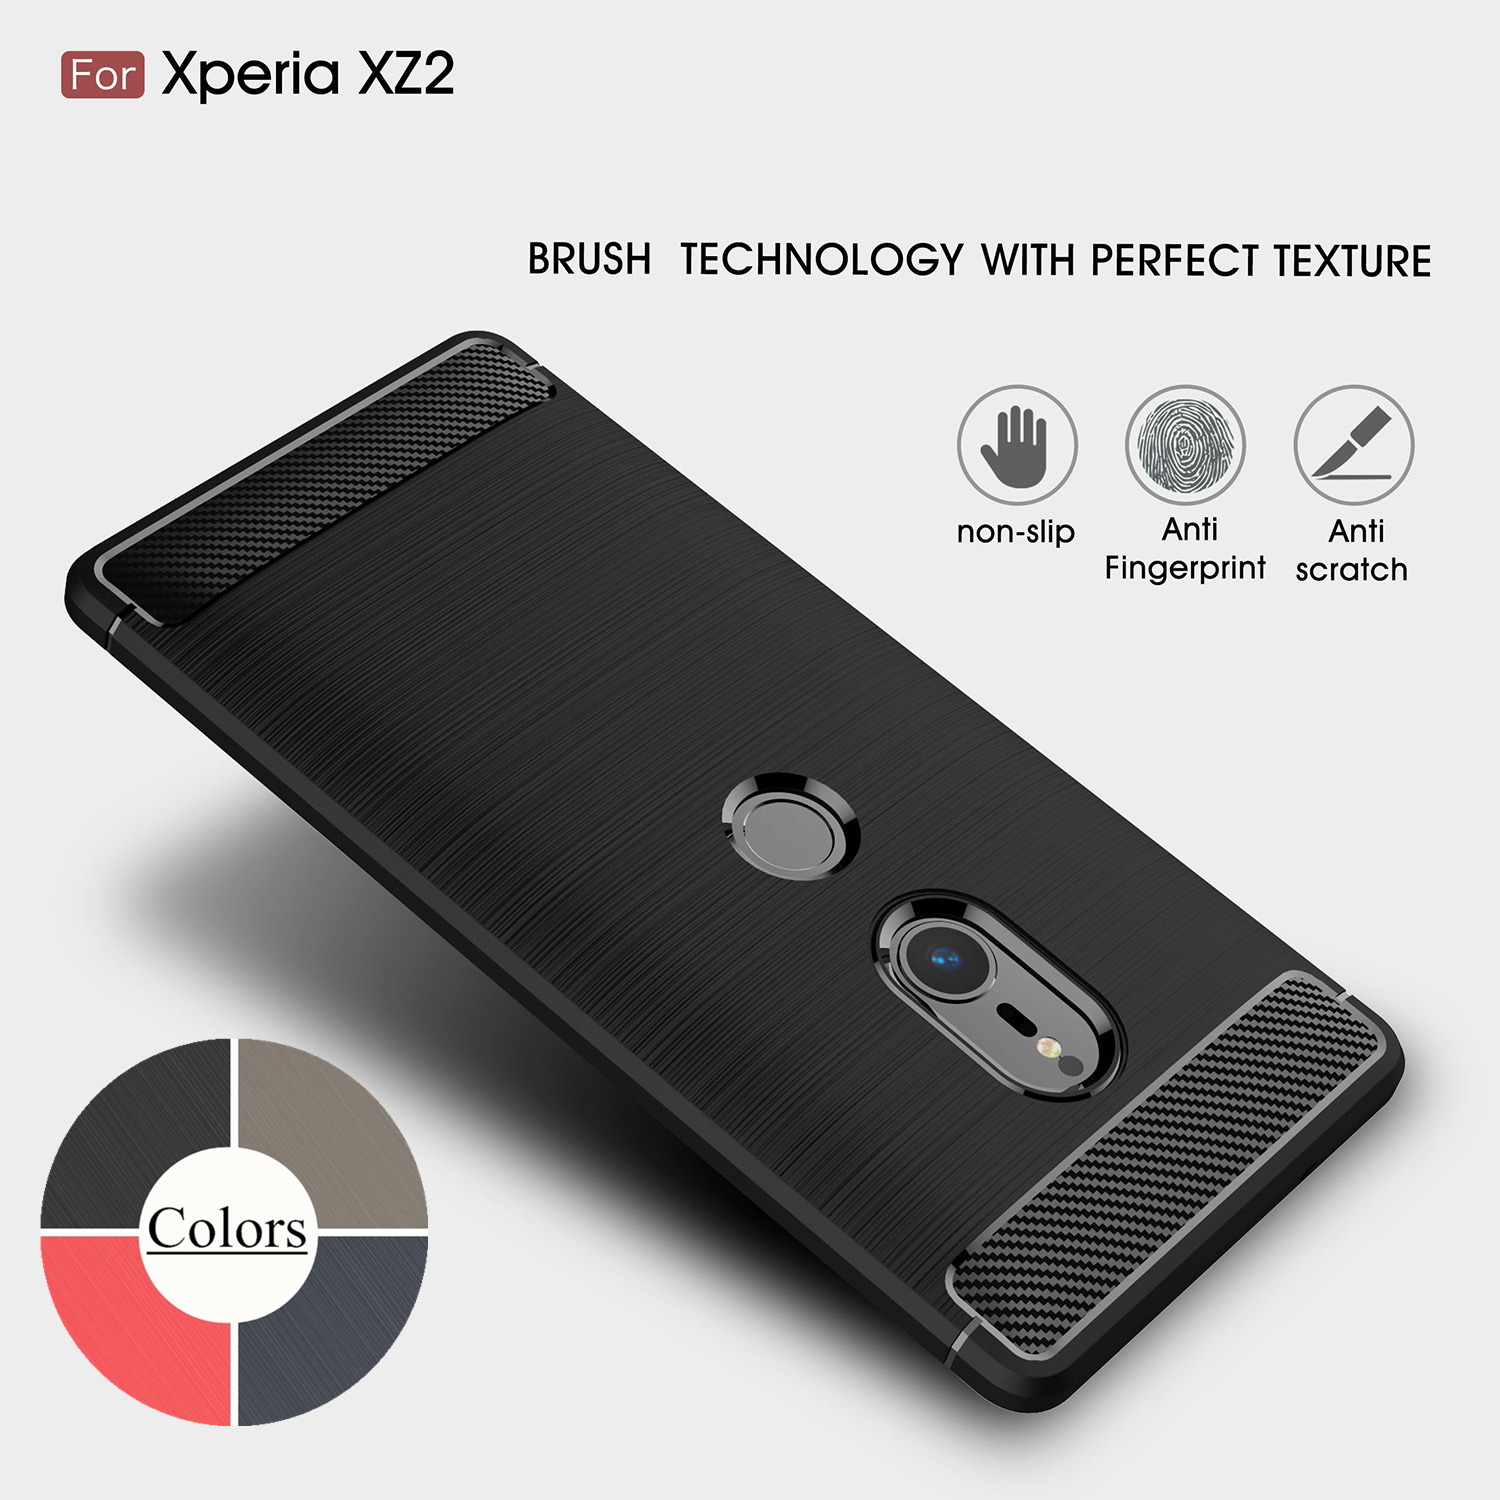 the latest 96fb2 43bf5 US $3.79 5% OFF|Case for Sony Xperia XZ2 / XZ2 Compact XZ2c TPU Silicone  Case Ultra thin Soft Cover Matte Feel Phone Case Rugged Armor-in  Half-wrapped ...